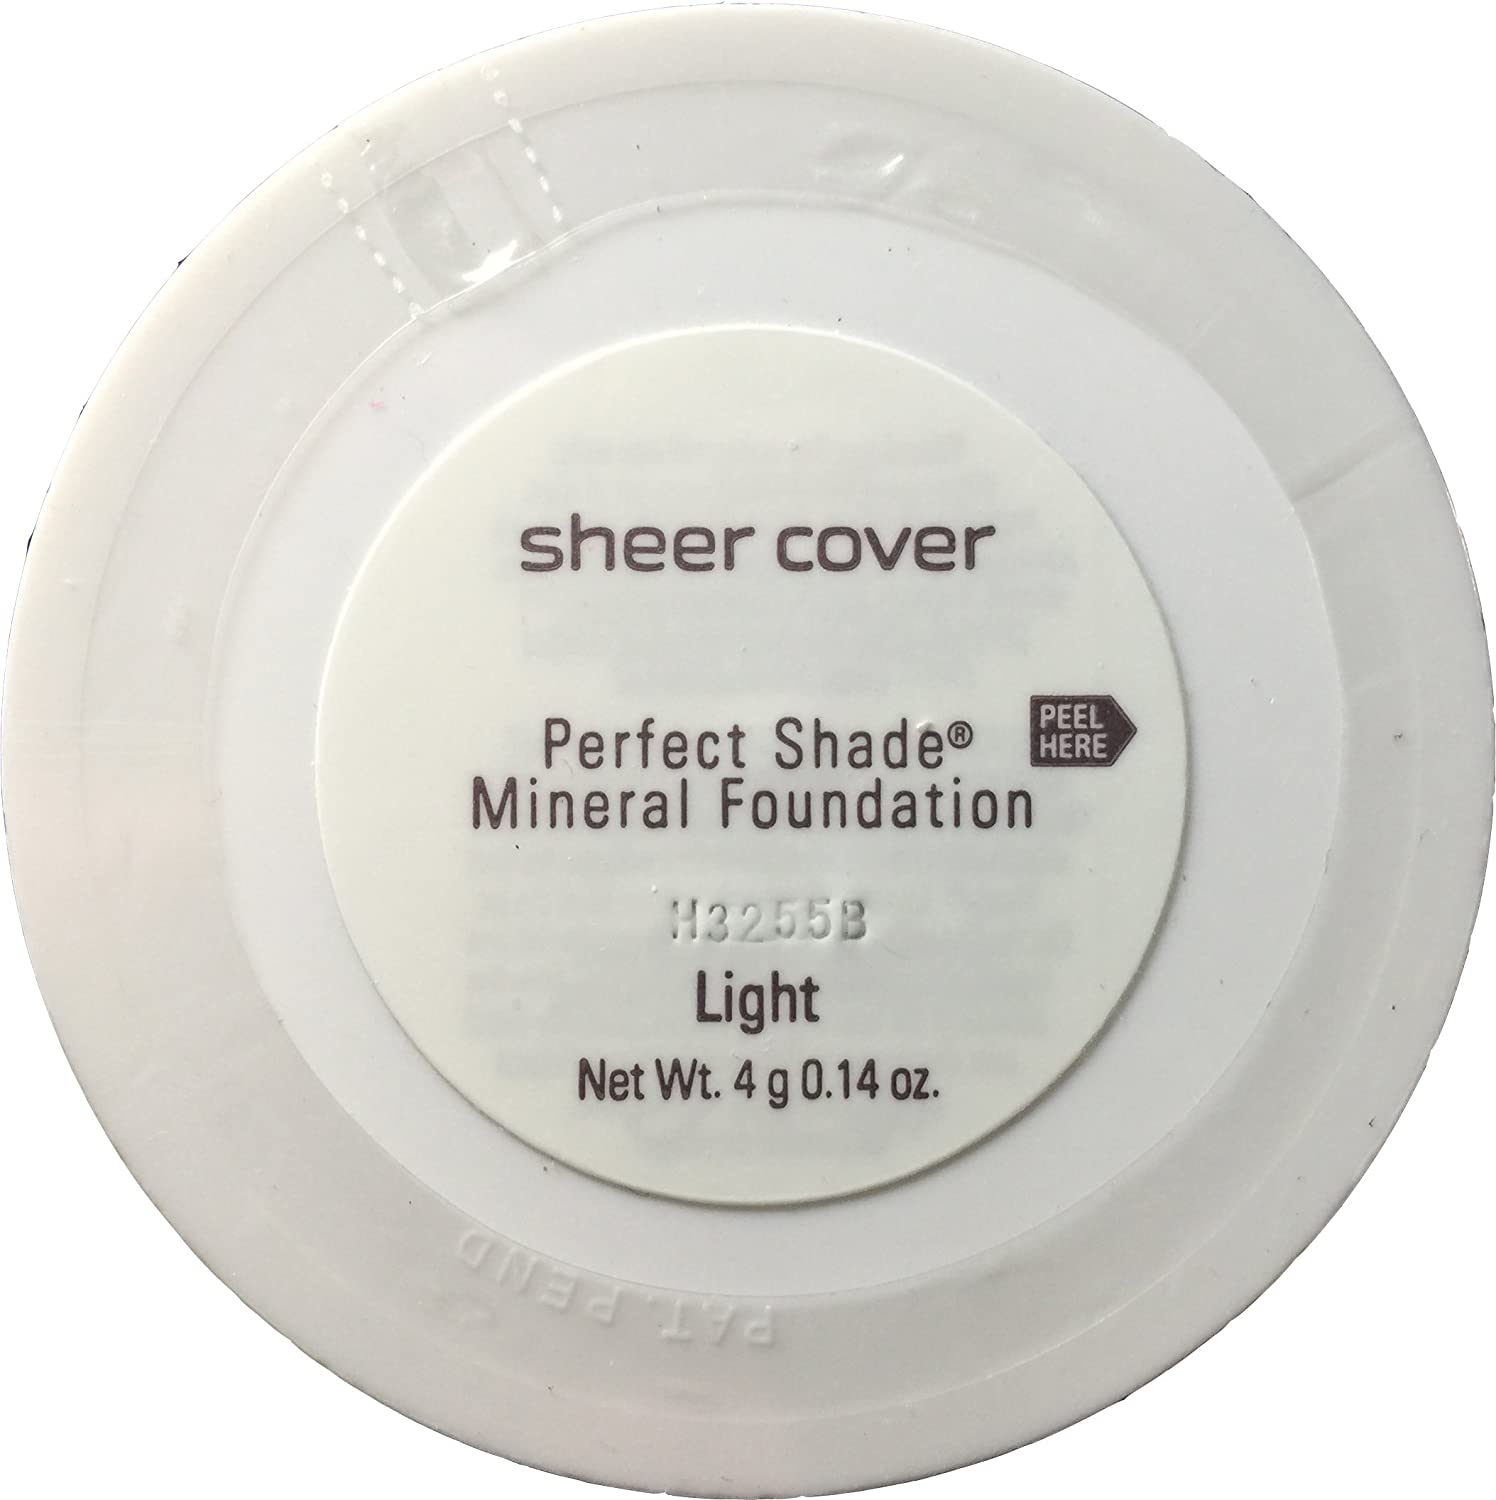 Buy sheer cover perfect shade mineral foundation light 4g 0 14 oz online at low prices in india amazon in